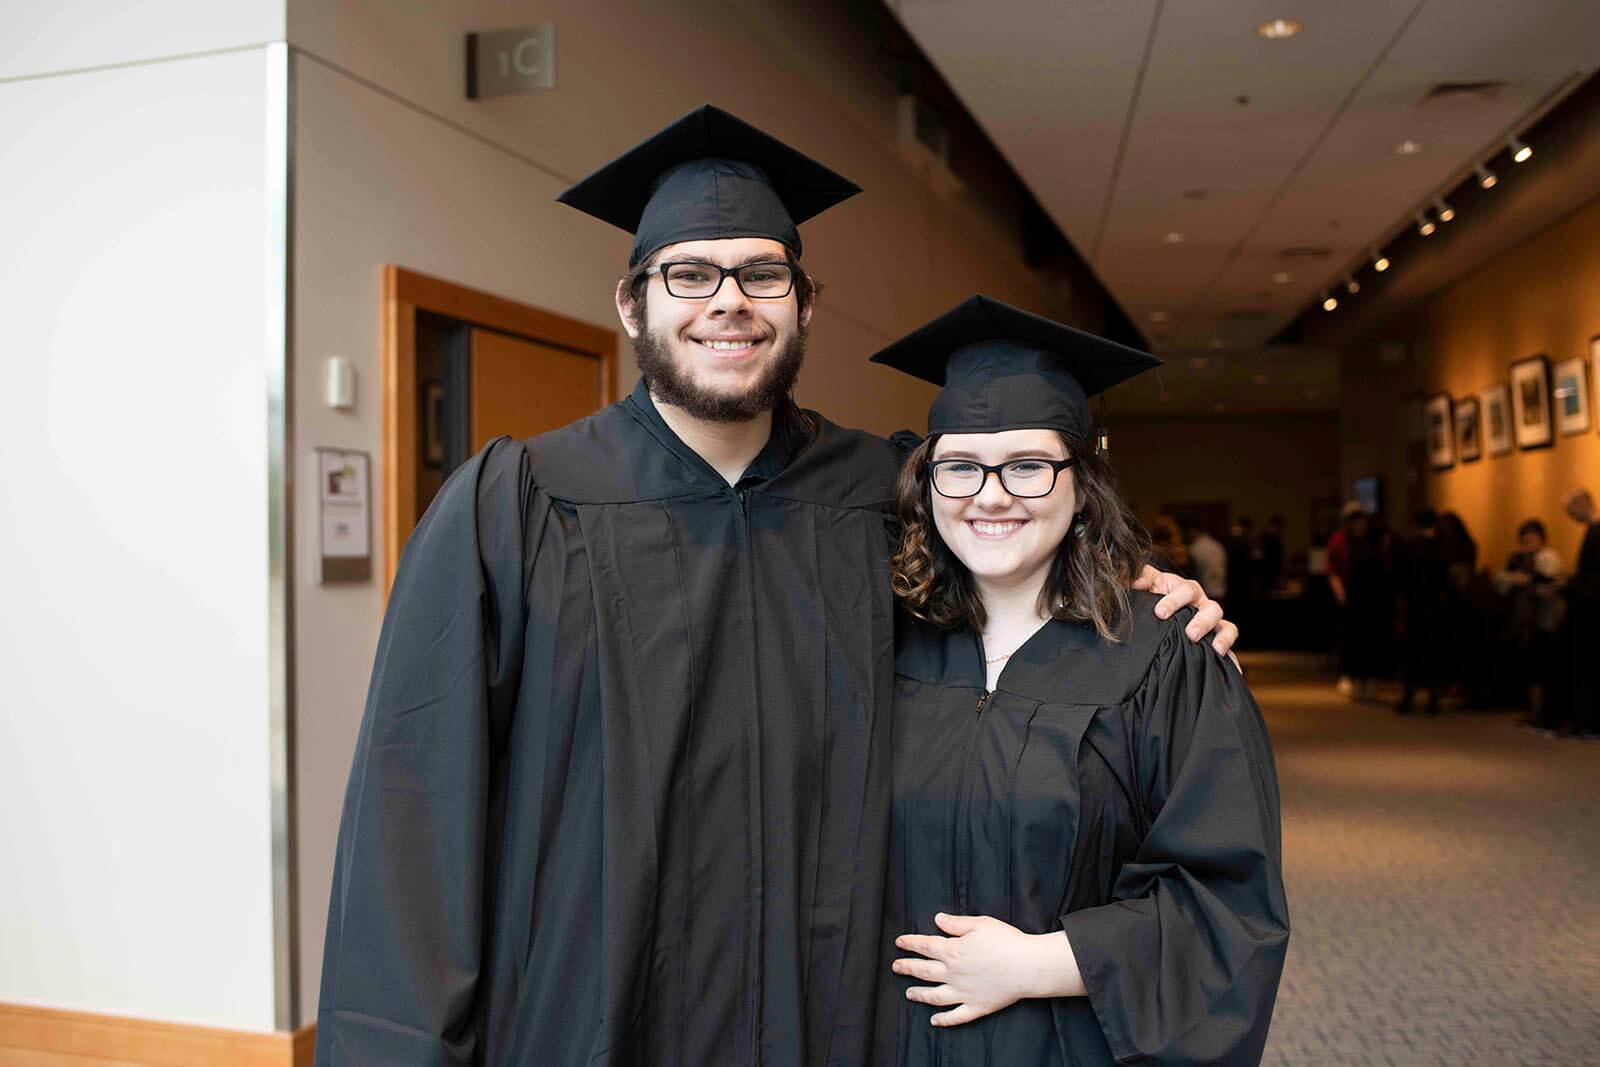 A man and woman in graduation robes and mortarboards pose for a photo in a convention center hallway.